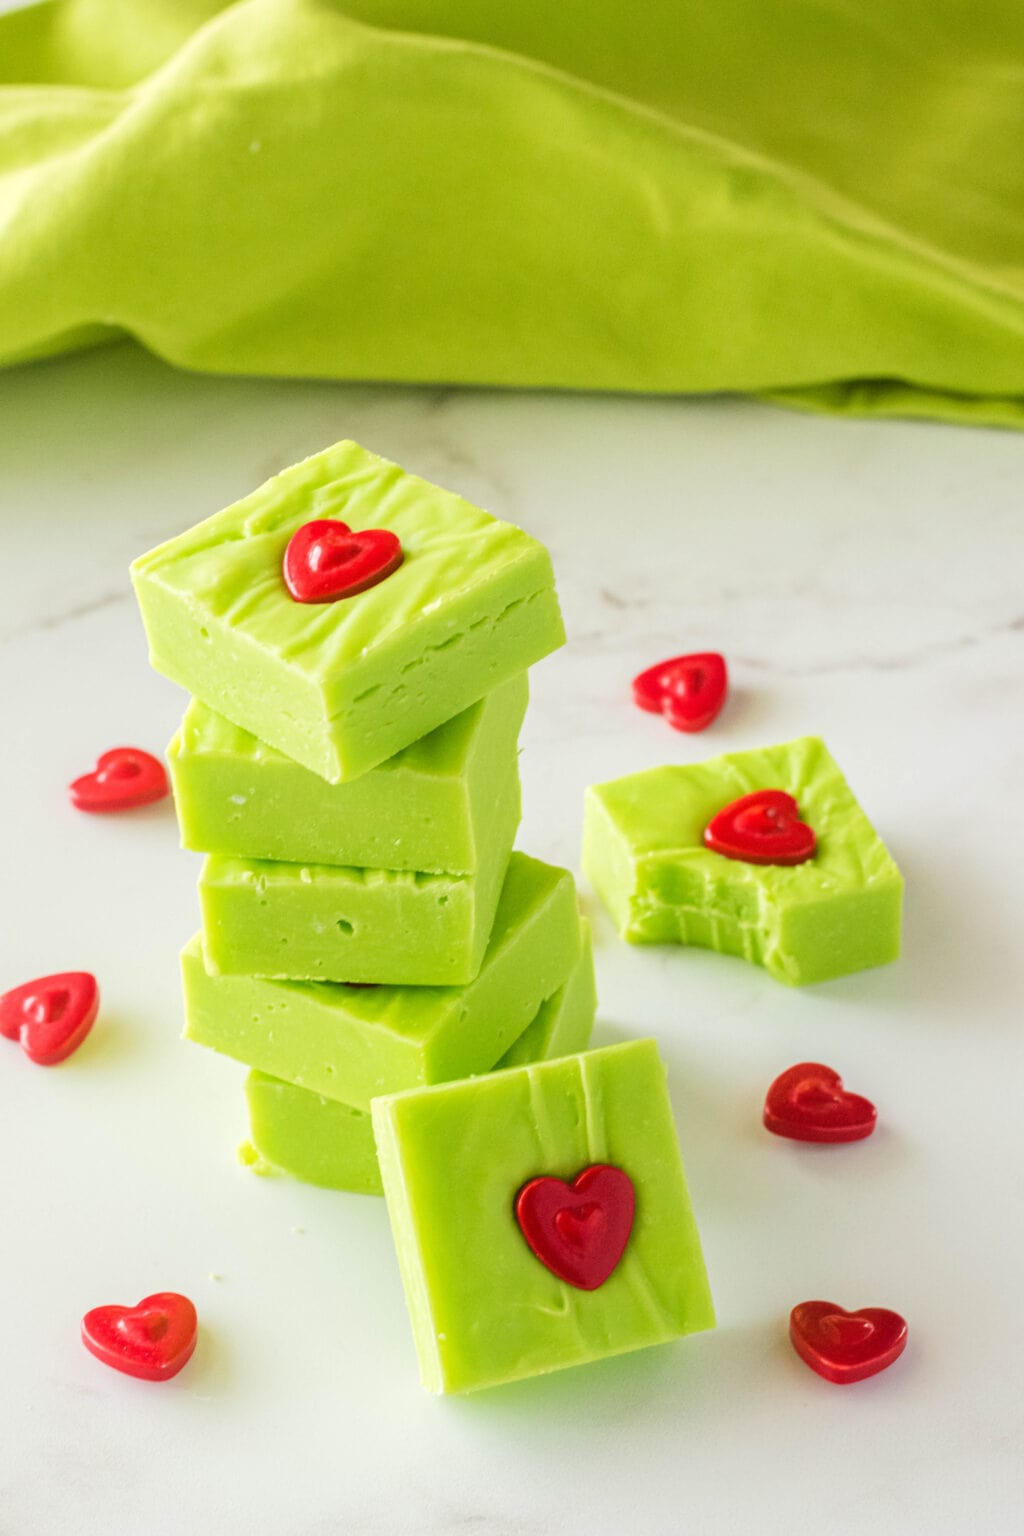 grinch fudge pieces stacked on a table